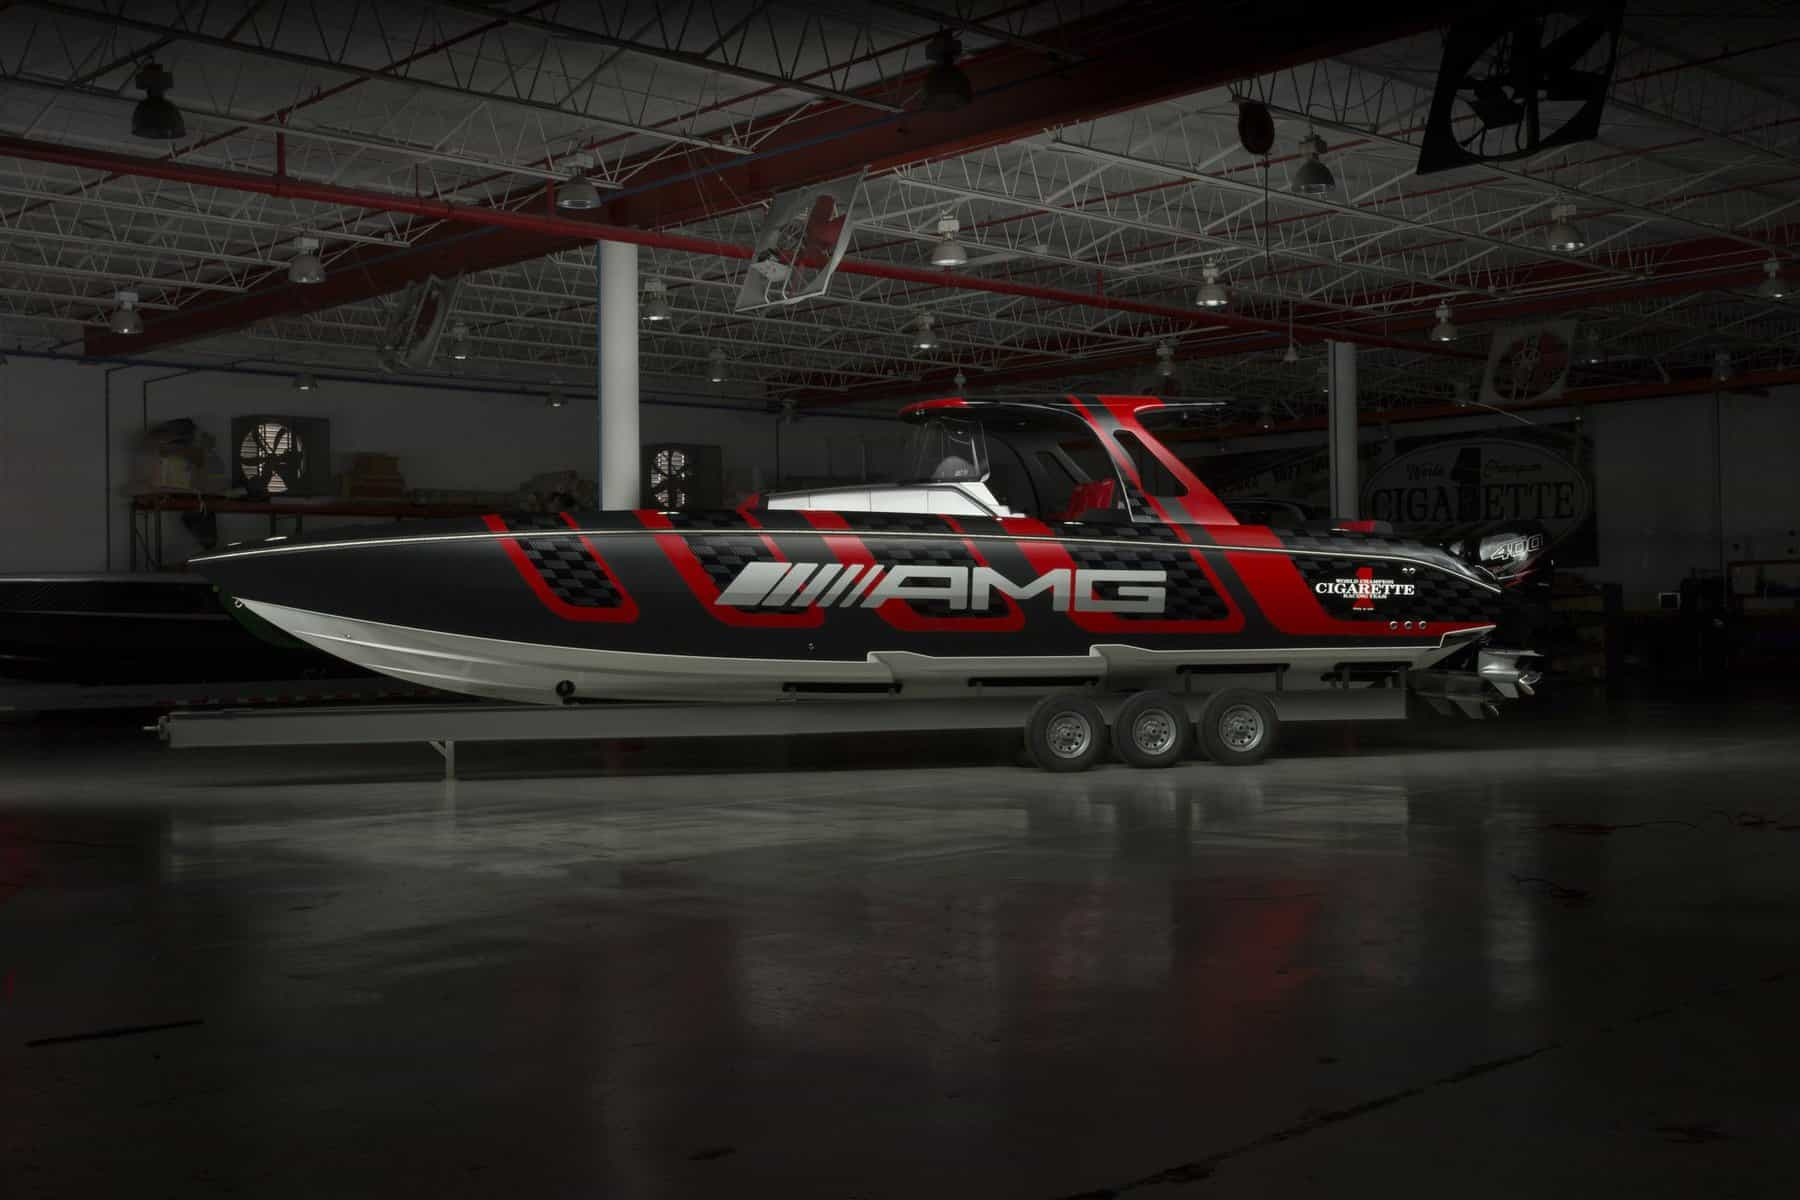 amg-carbon-edition-speedboat-from-mercedes-amg-and-cigarette-racing-7